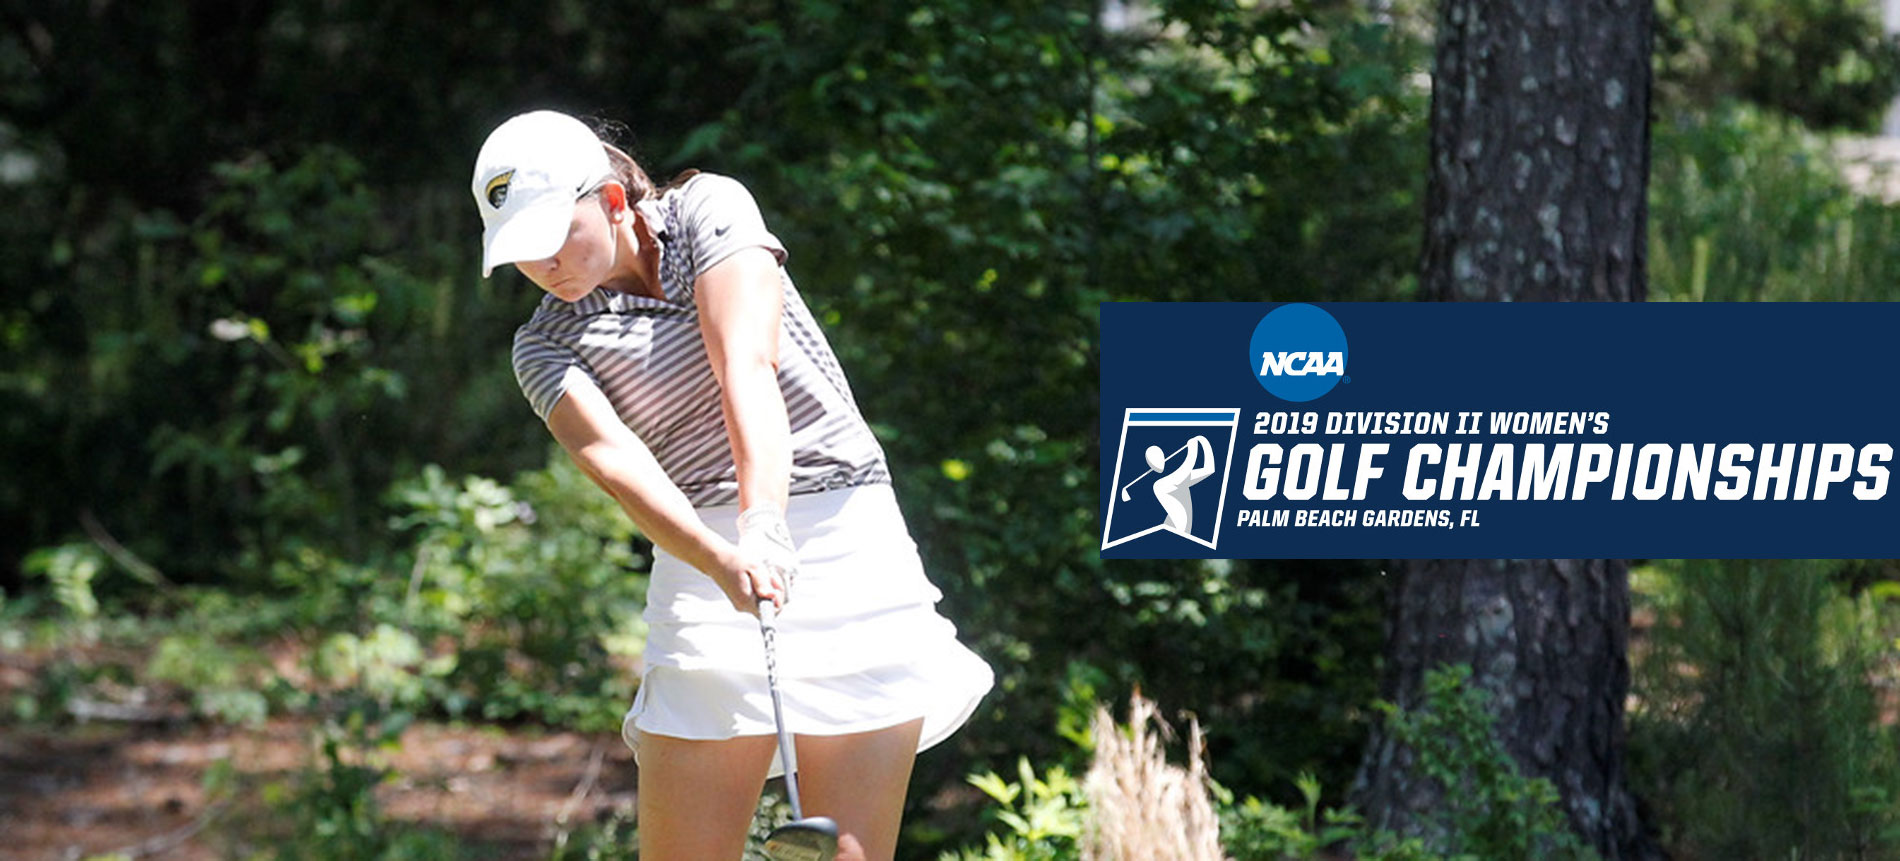 Victoria Hall Deadlocked in Tie for 61st Place After Two Rounds of NCAA Women's Golf Championships